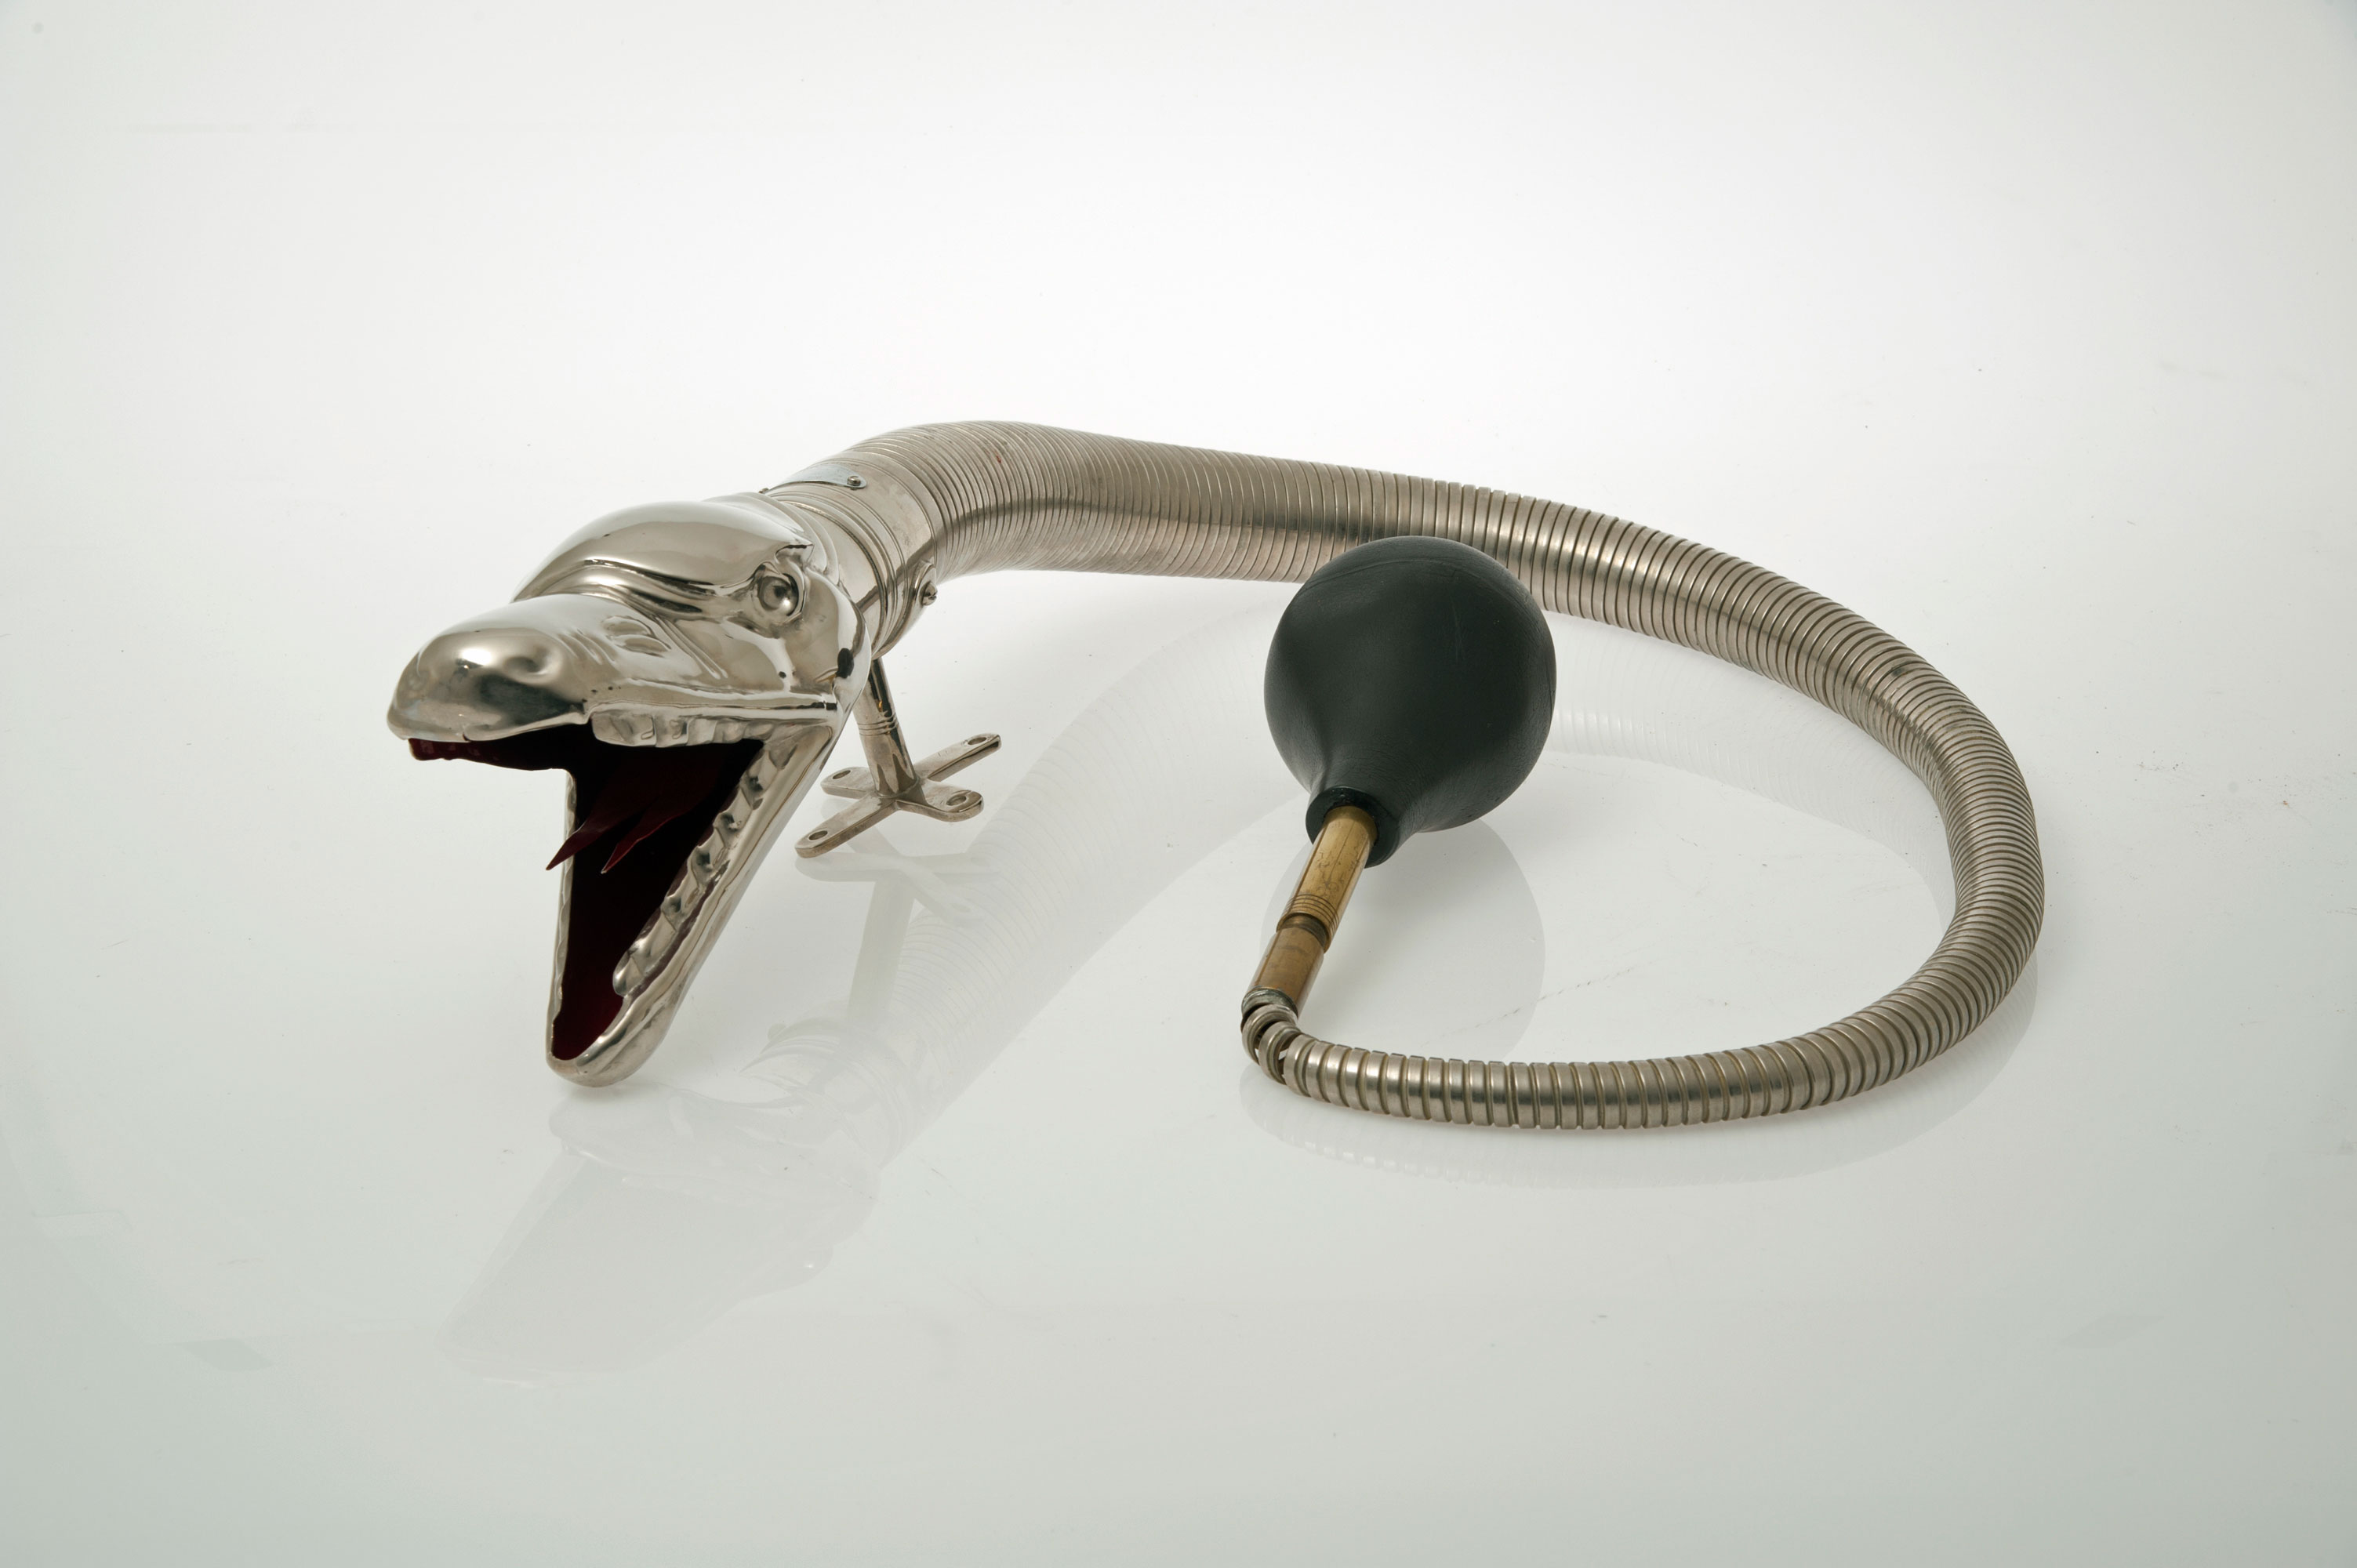 A historic silver car horn in the shape of a Boa snake